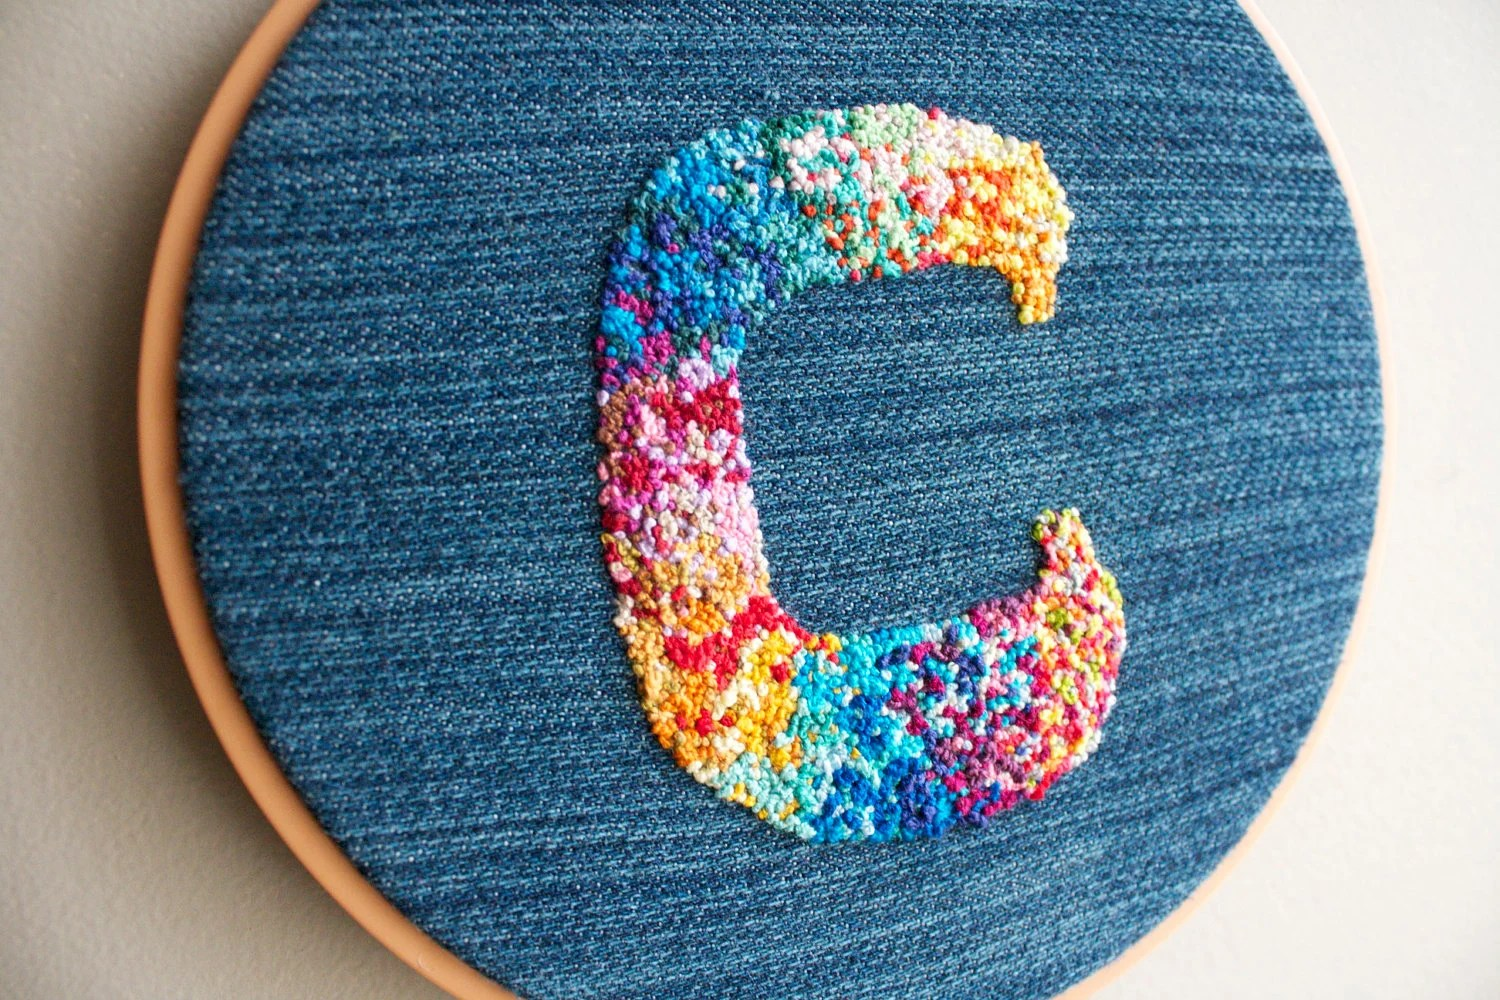 Custom Hand Embroidered Letter // Custom Embroidery // Colorful French Knots // Wall Decoration // Embroidered Initial // Denim Hoop Art